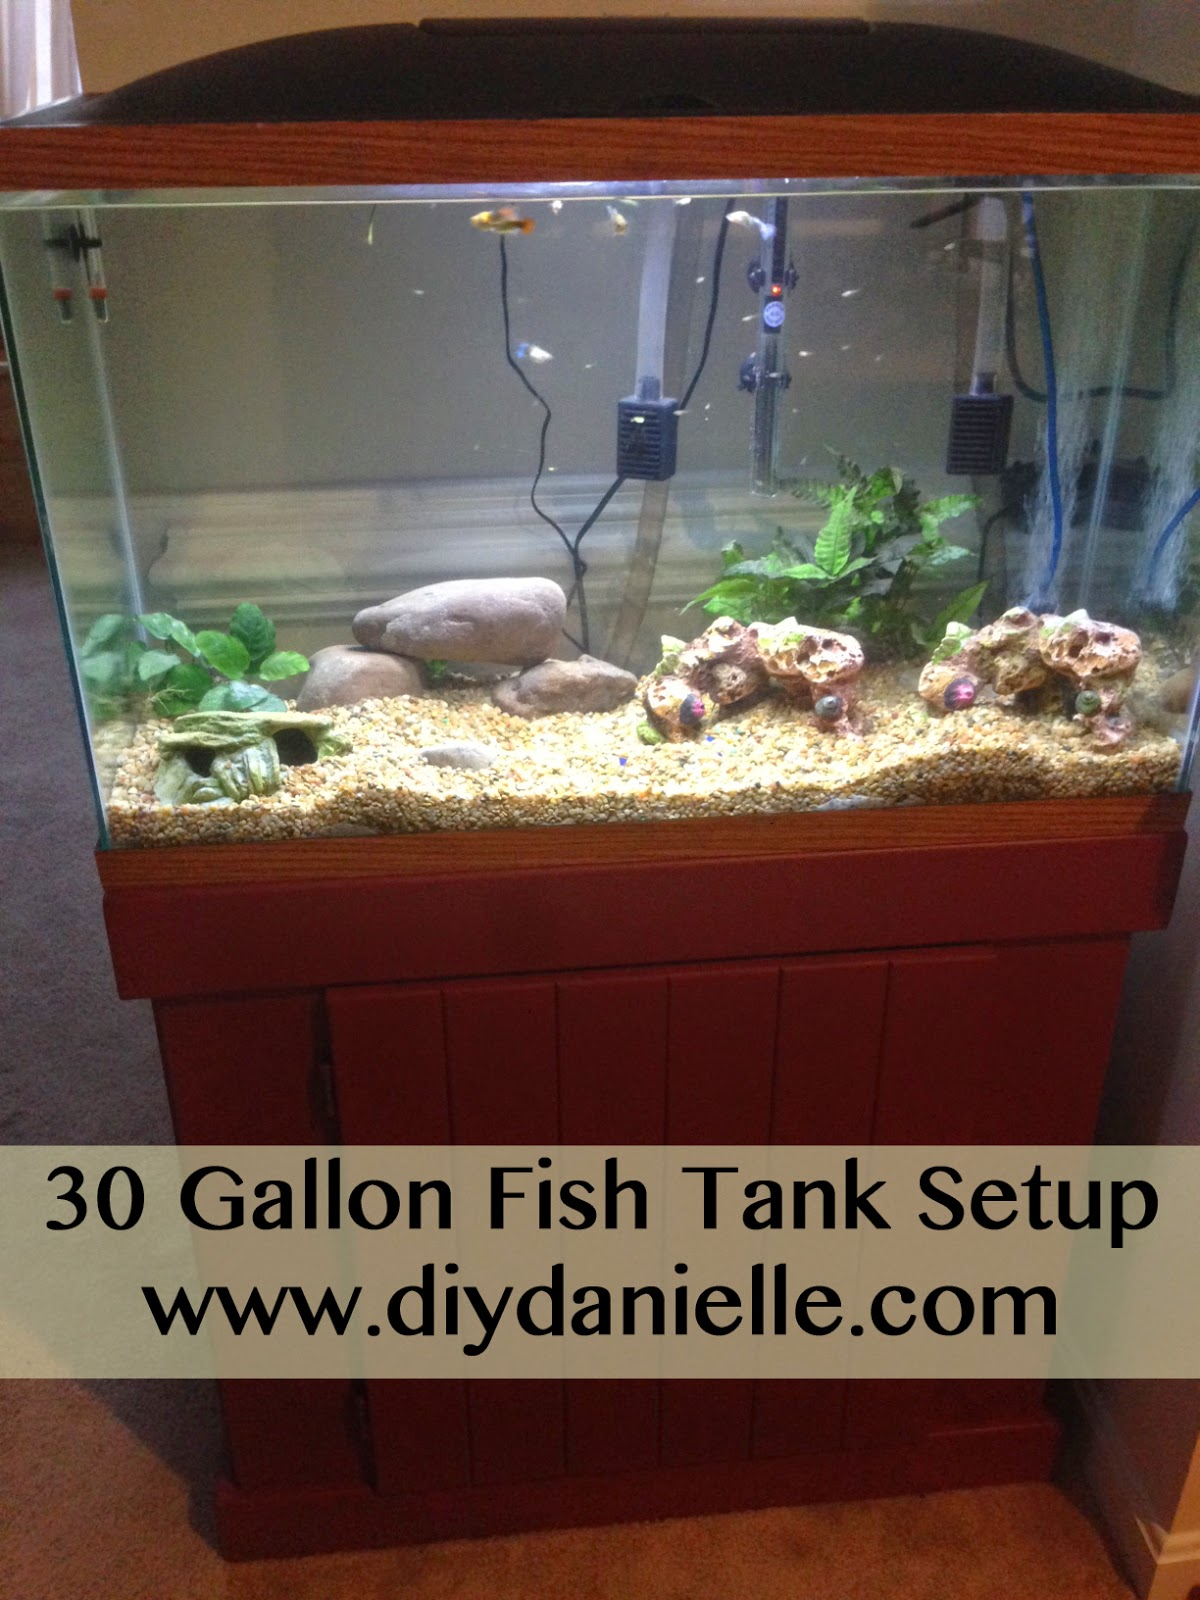 Fish tank vs aquarium - 30 Gallon Fish Tank Setup